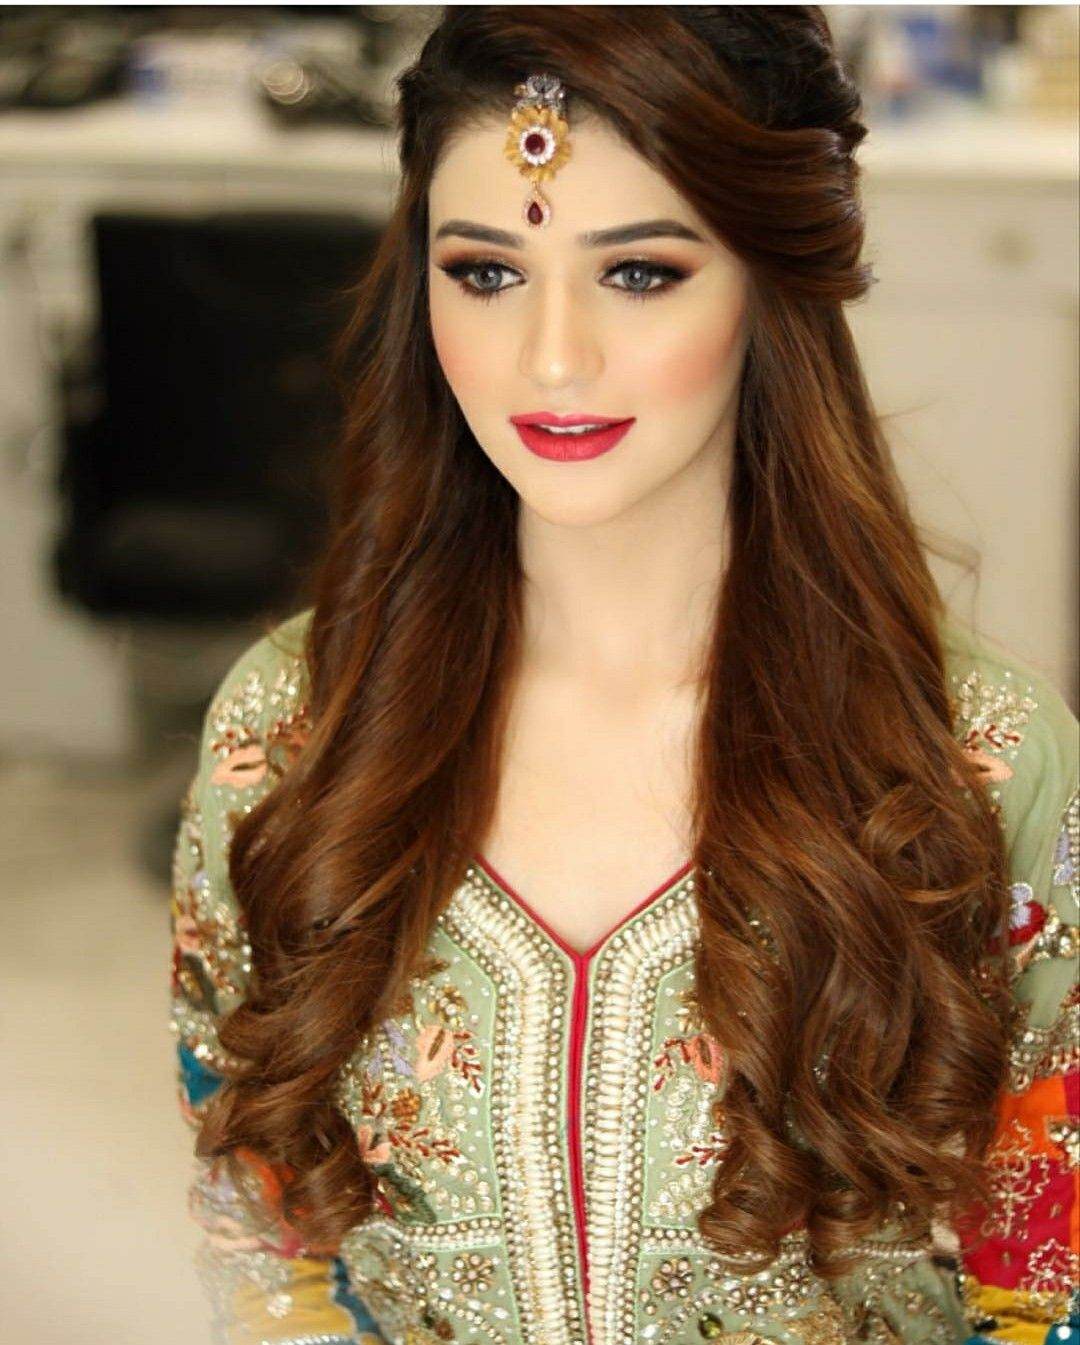 Hairstyles Pakistani Waleema: Pin By Mano👸 On Wadding's In 2019